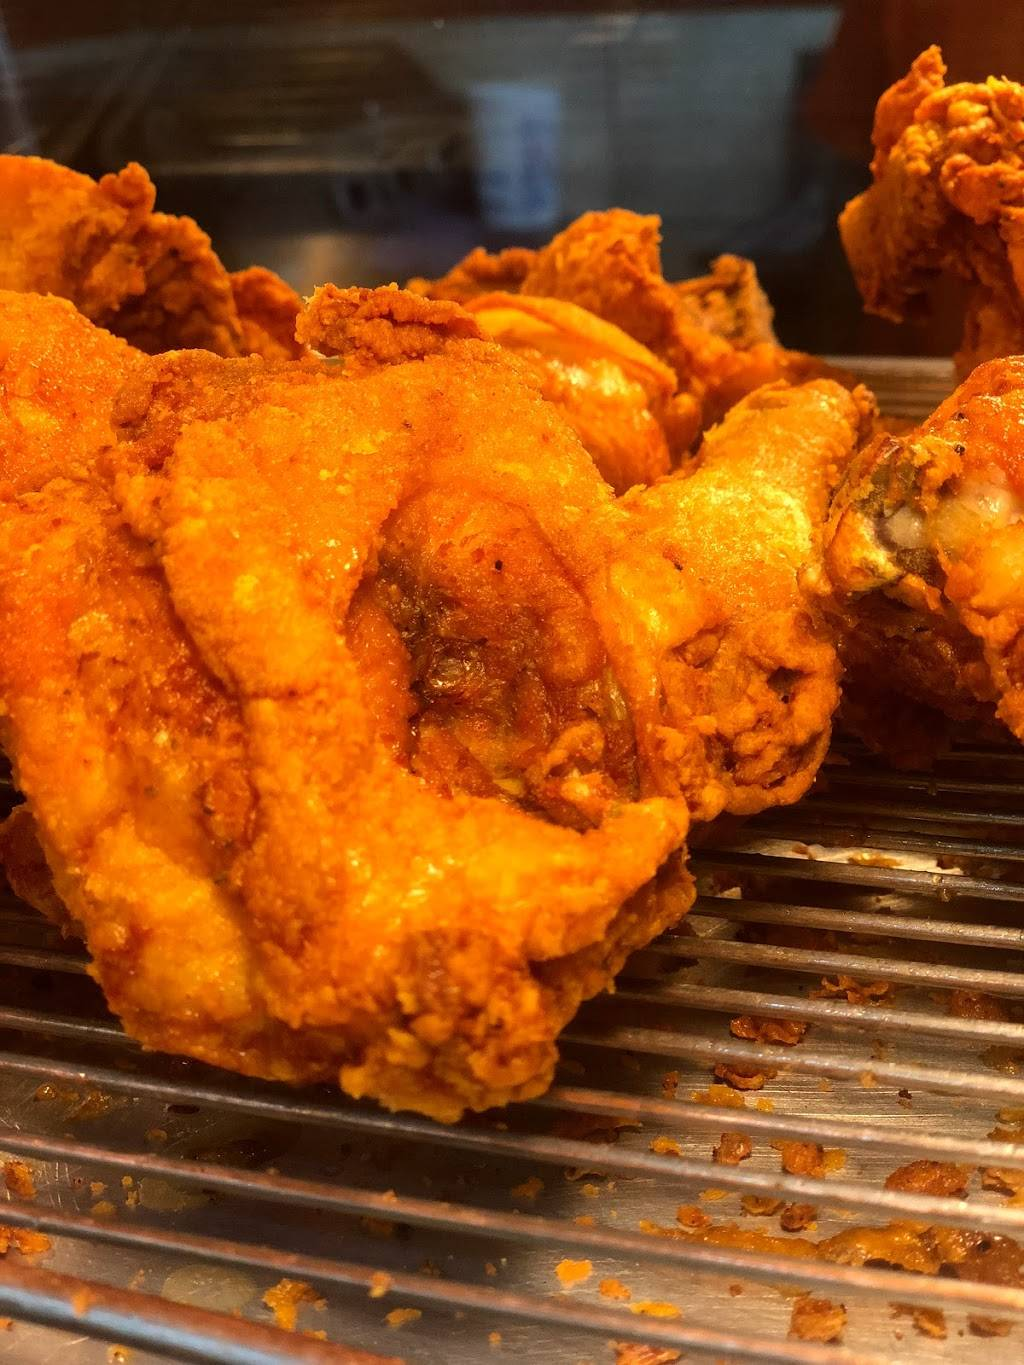 Dallas Chicken & Biscuits | meal takeaway | 2027 Lexington Ave, New York, NY 10035, USA | 9172615452 OR +1 917-261-5452